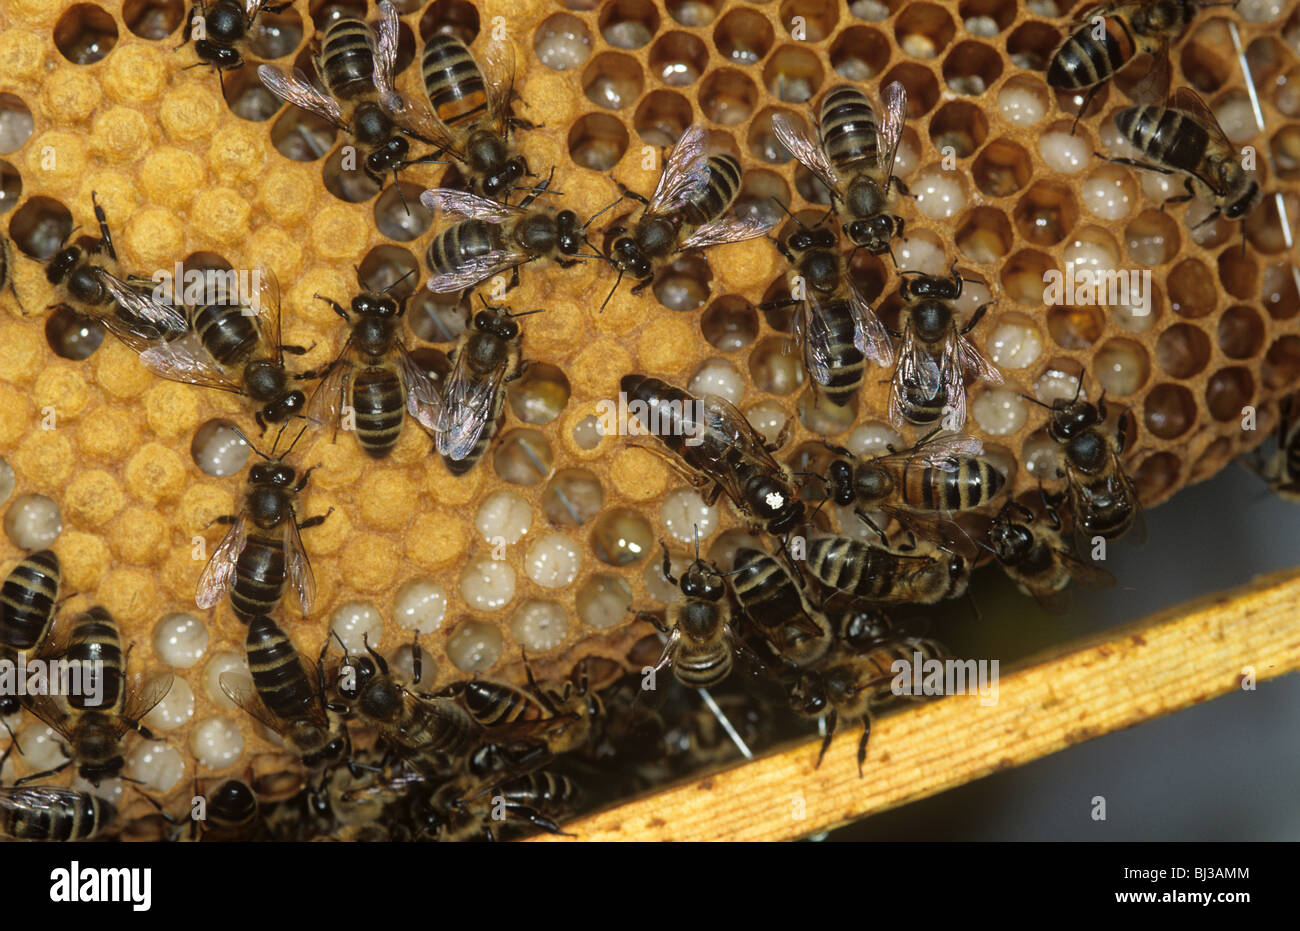 Honey bee (Apis mellifera) queen (white spot) and workers on hive brood cells - Stock Image